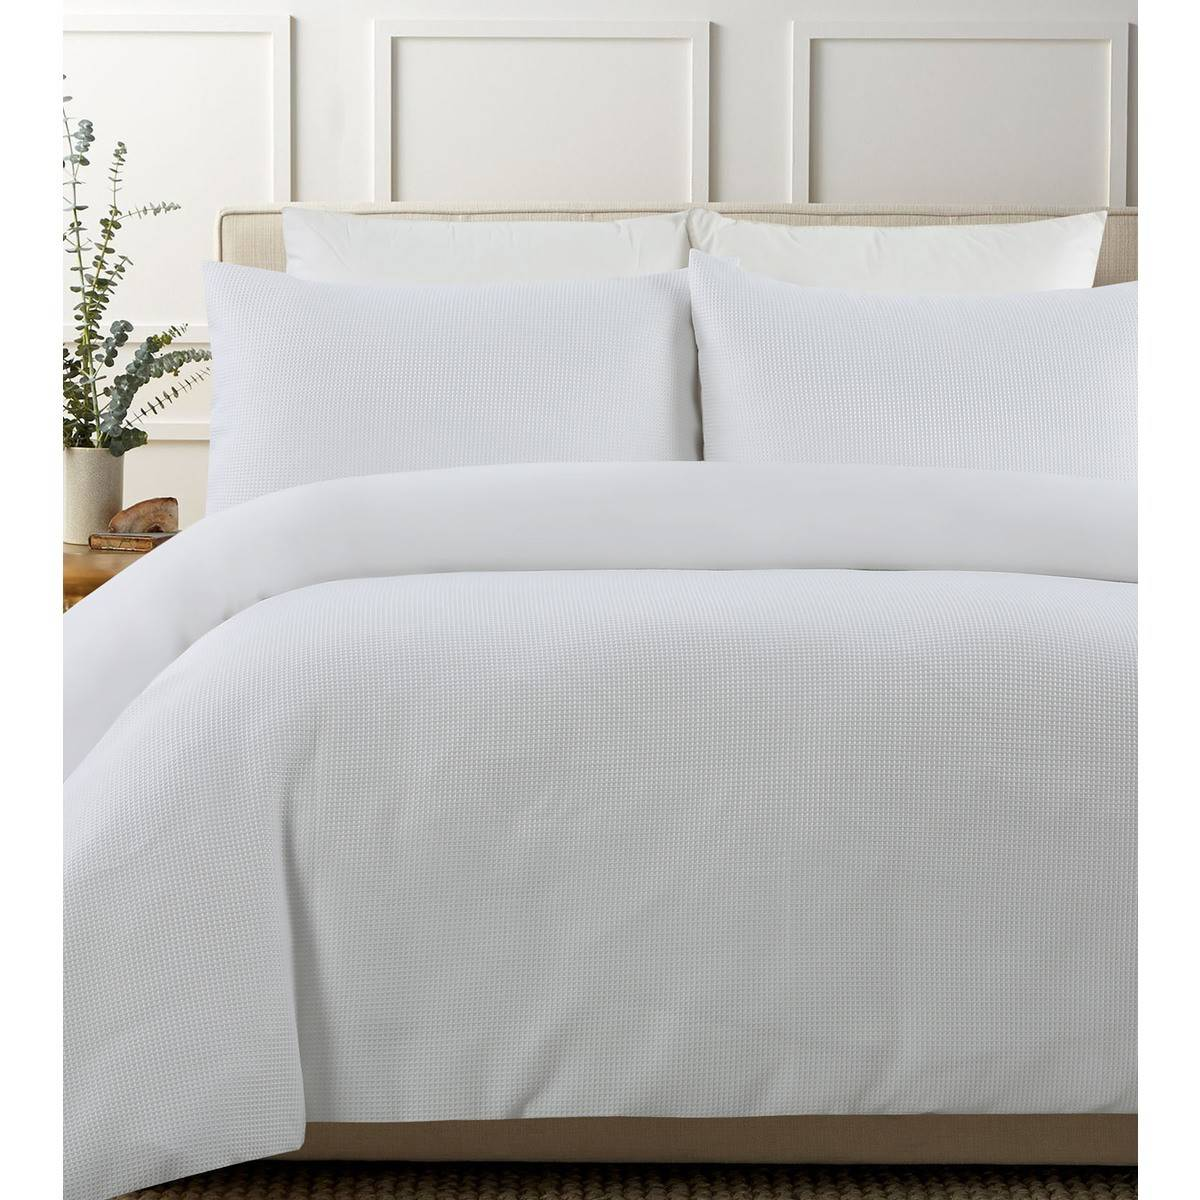 Quilt Cover King Smart Value Waffle Quilt Cover Set White King